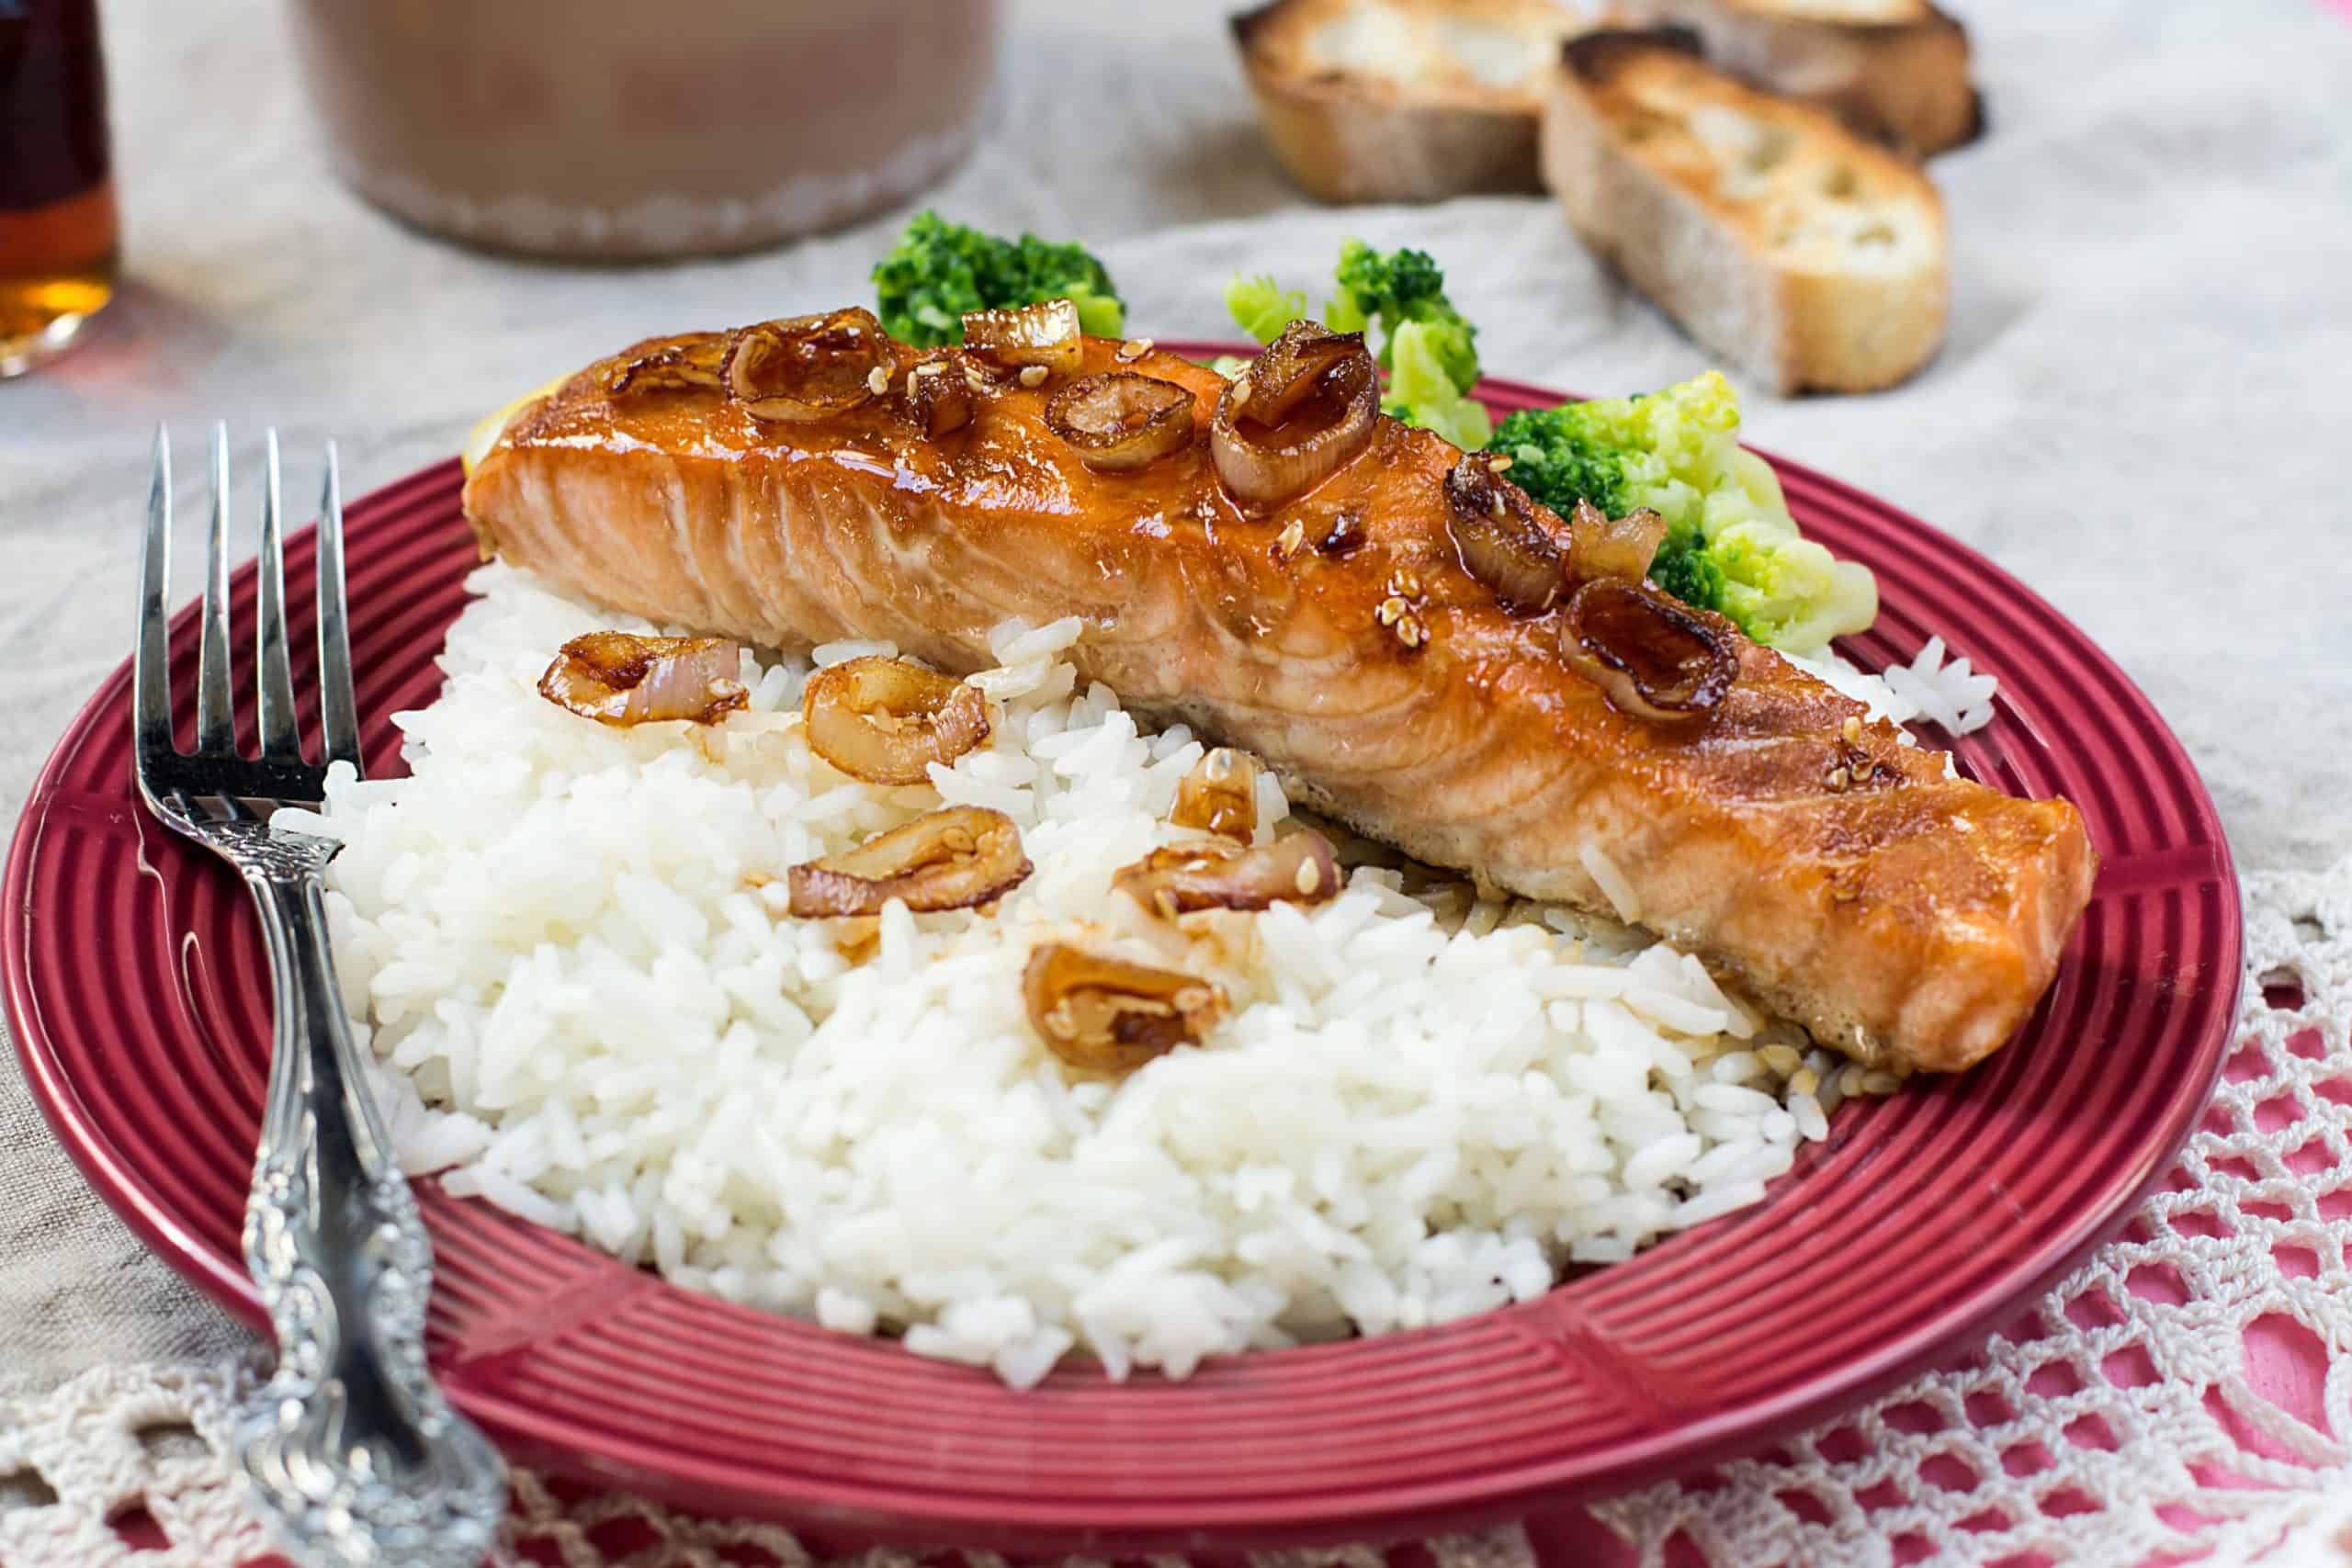 Maple glazed salmon with caramelized onions and rice, air fryer recipe